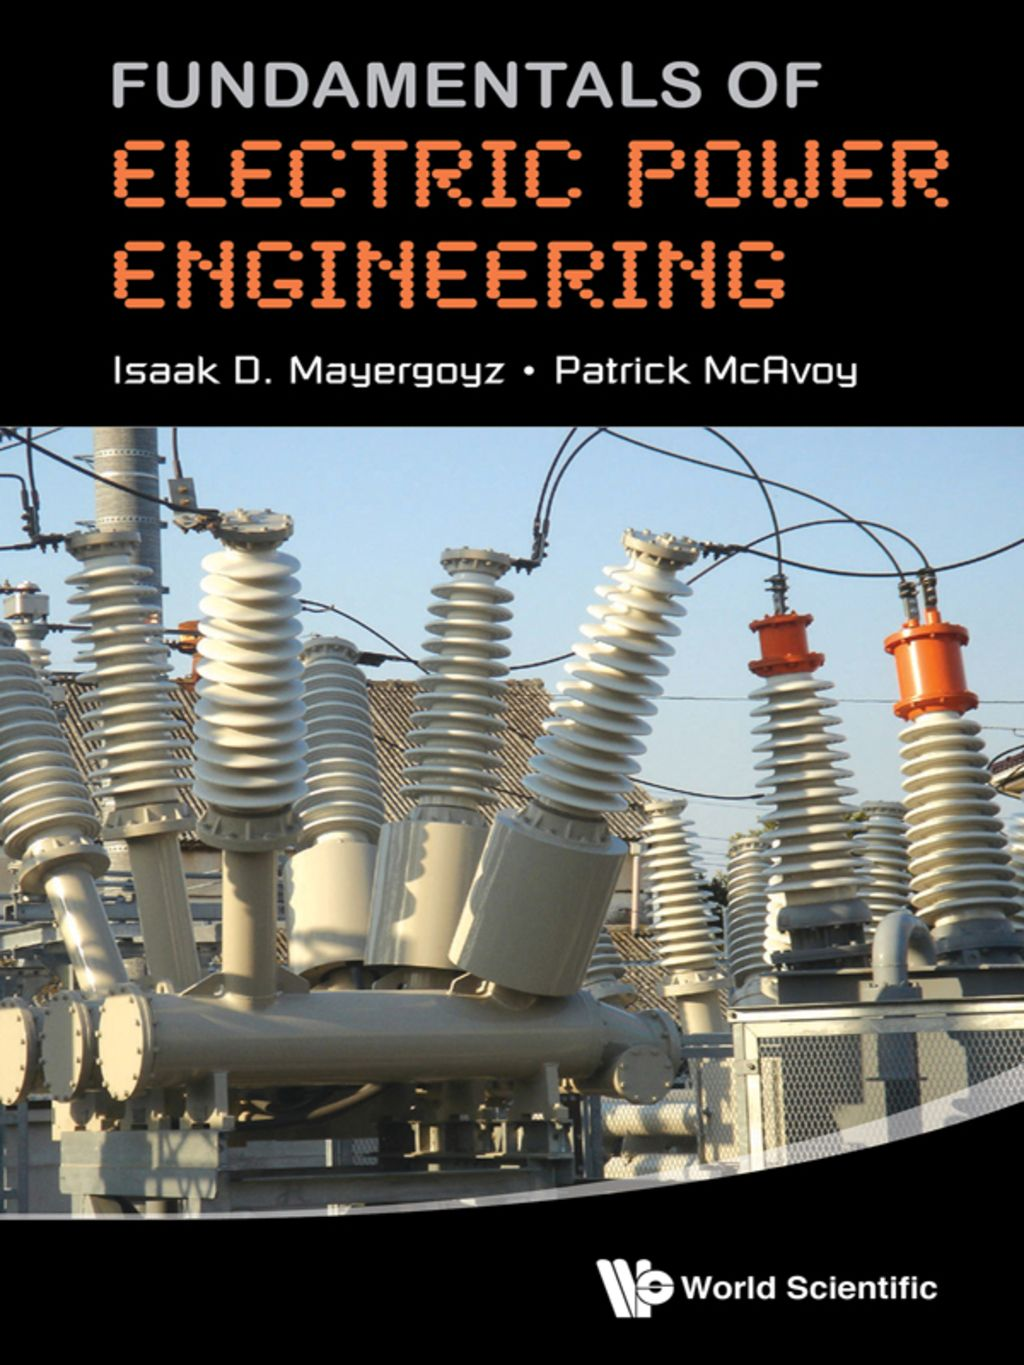 Fundamentals Of Electric Power Engineering Ebook Power Engineering Electrical Engineering Technology Electrical Engineering Projects